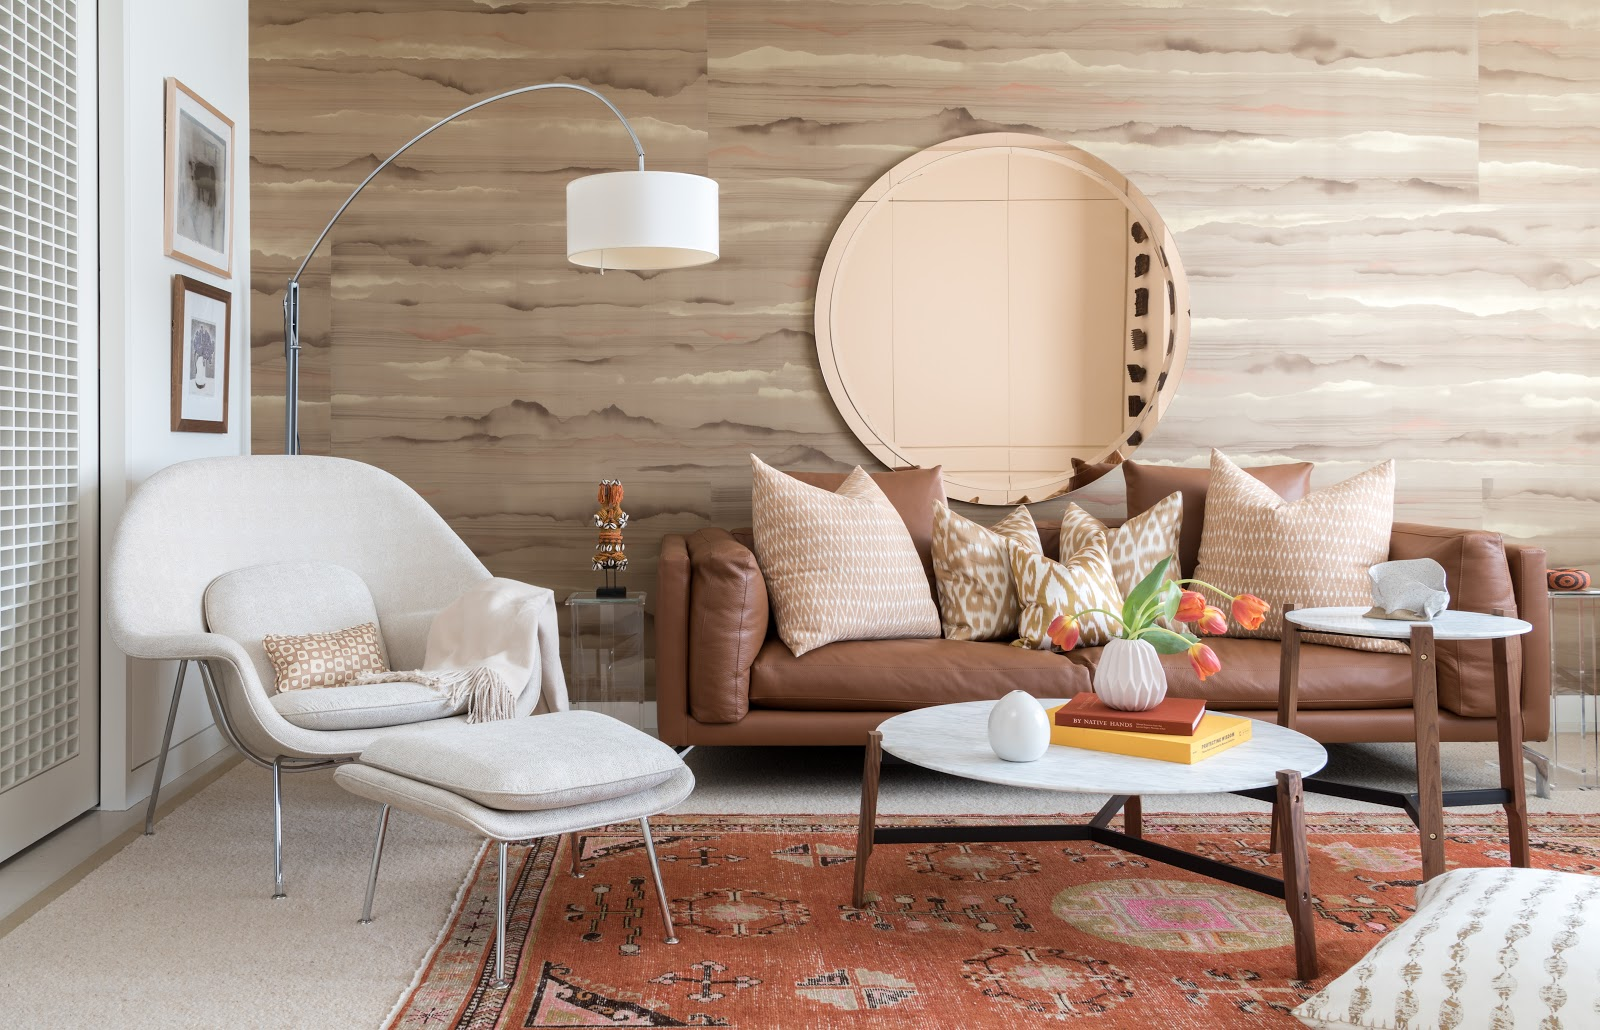 Warm, mid-century inspired living room with rose and amber tones - Ohorona24.in.ua Interior